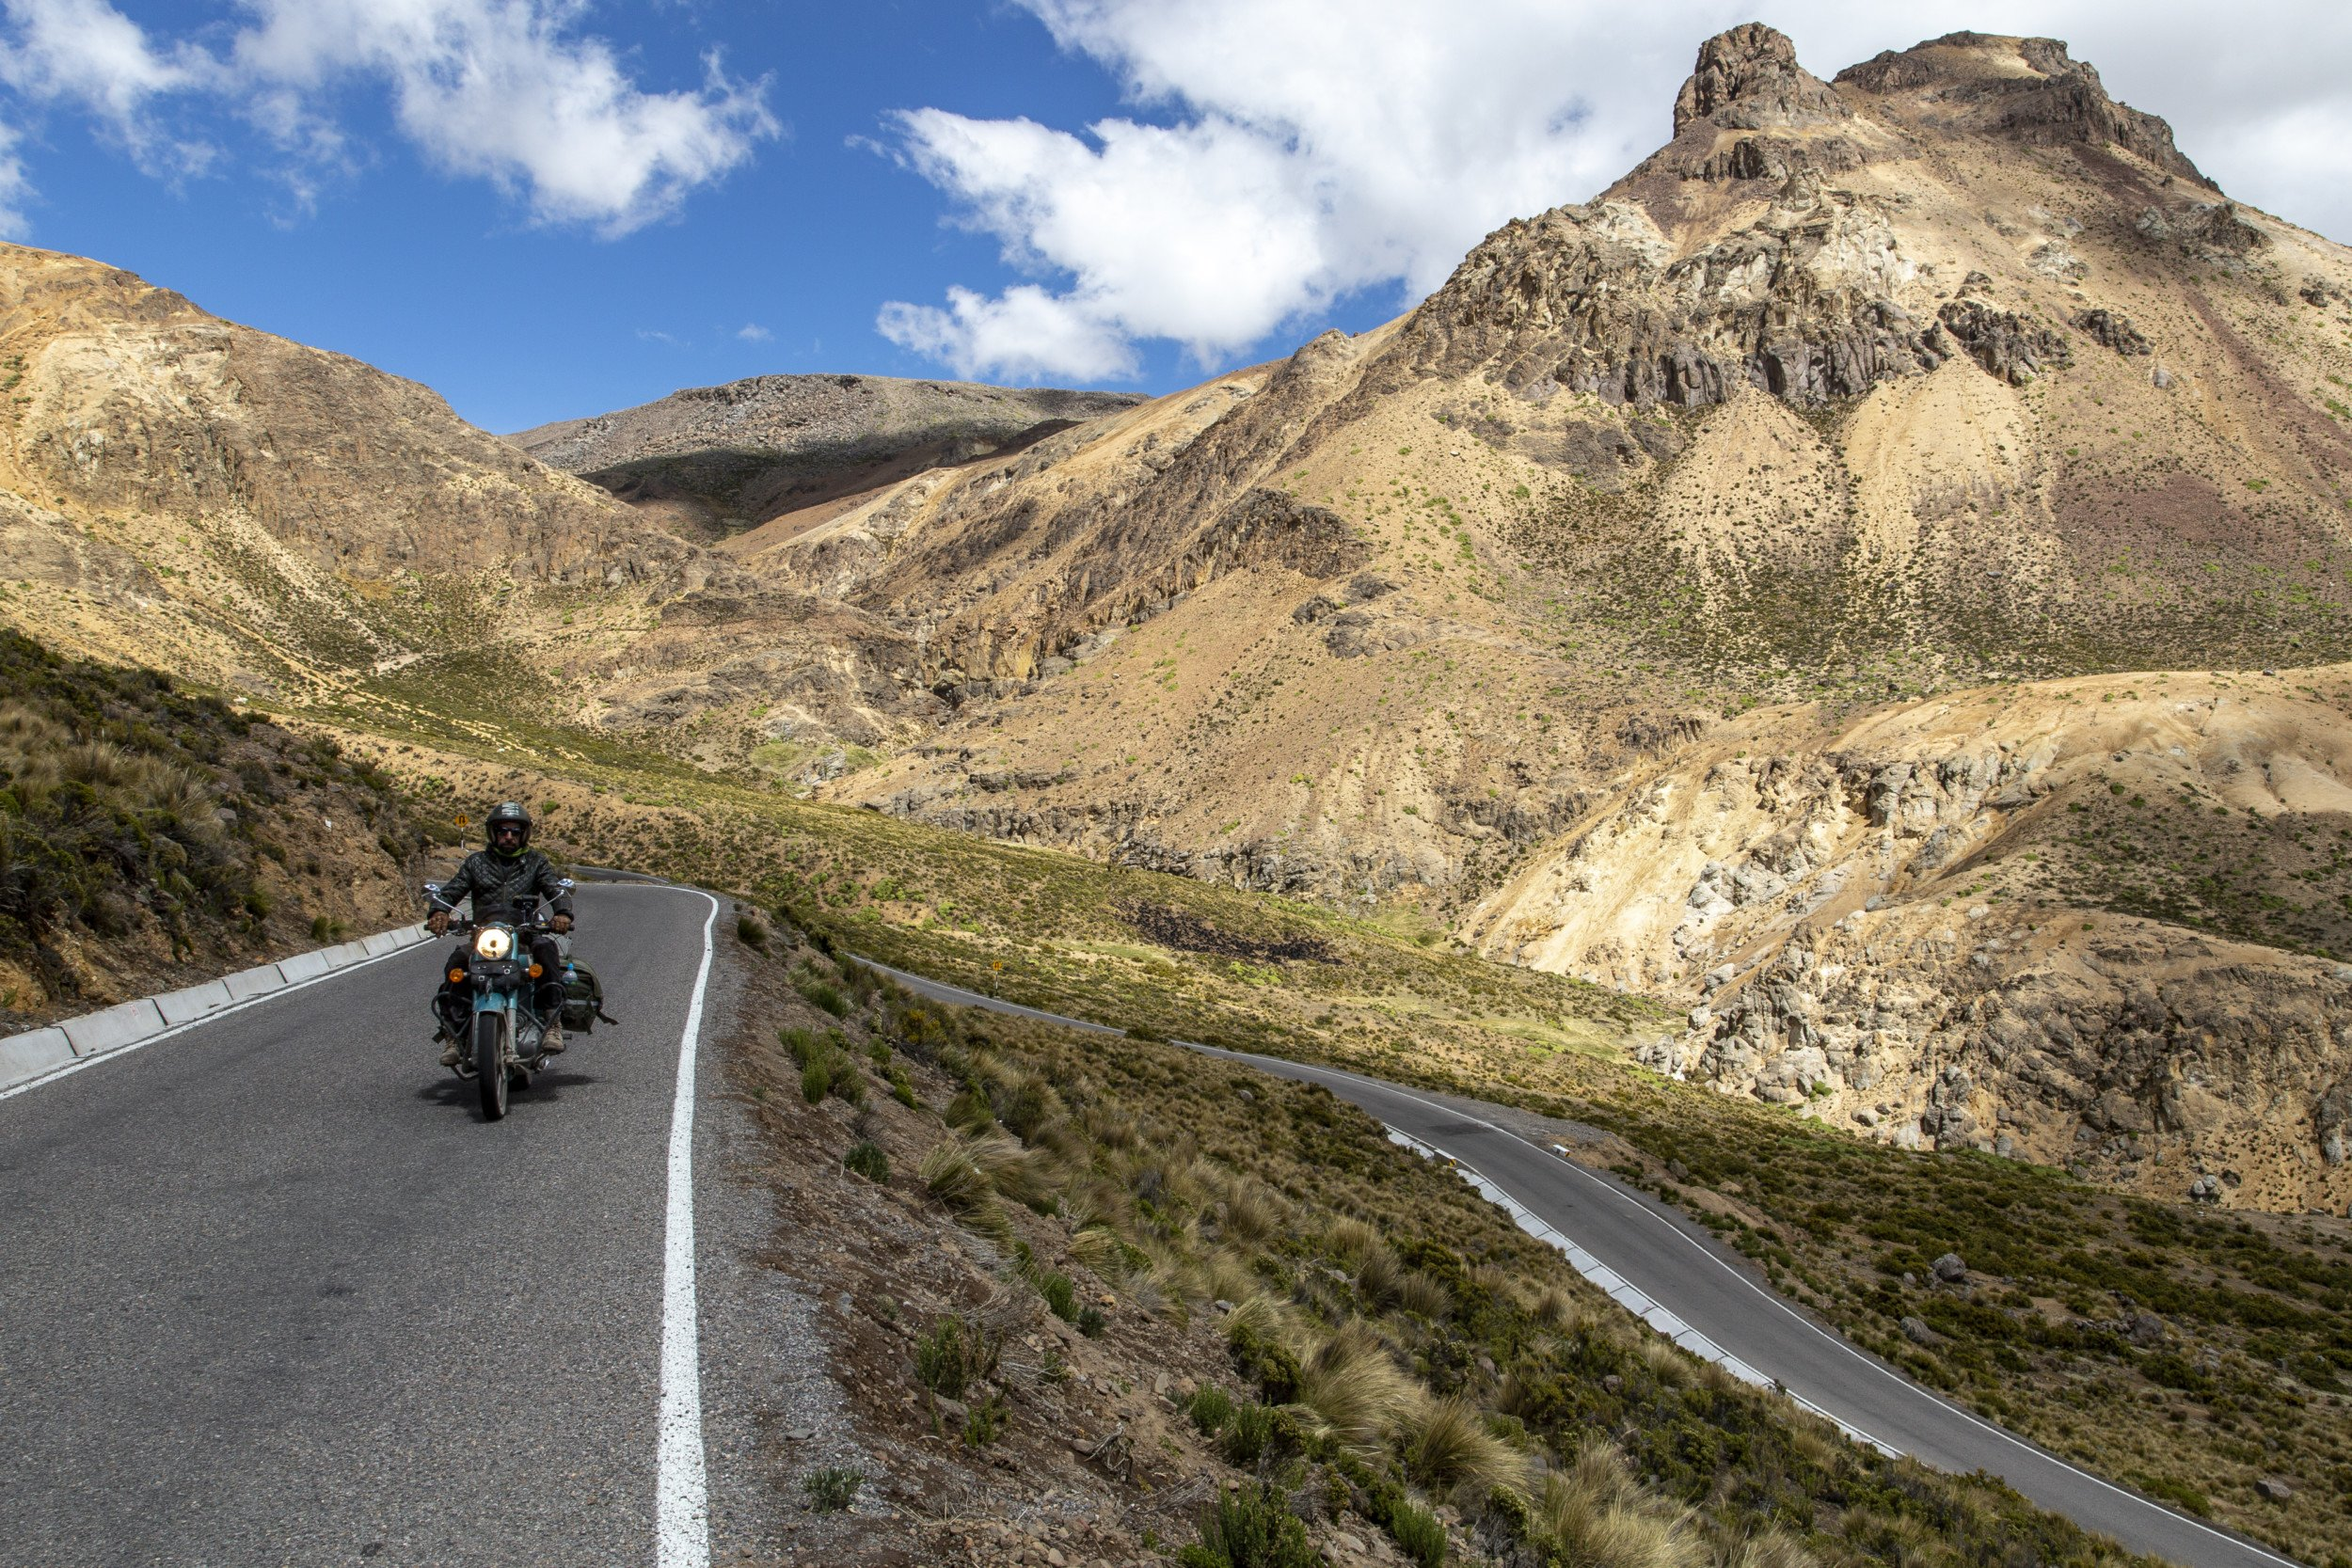 Motorcycle road trip Peru - Inca Treasures in the High Andes